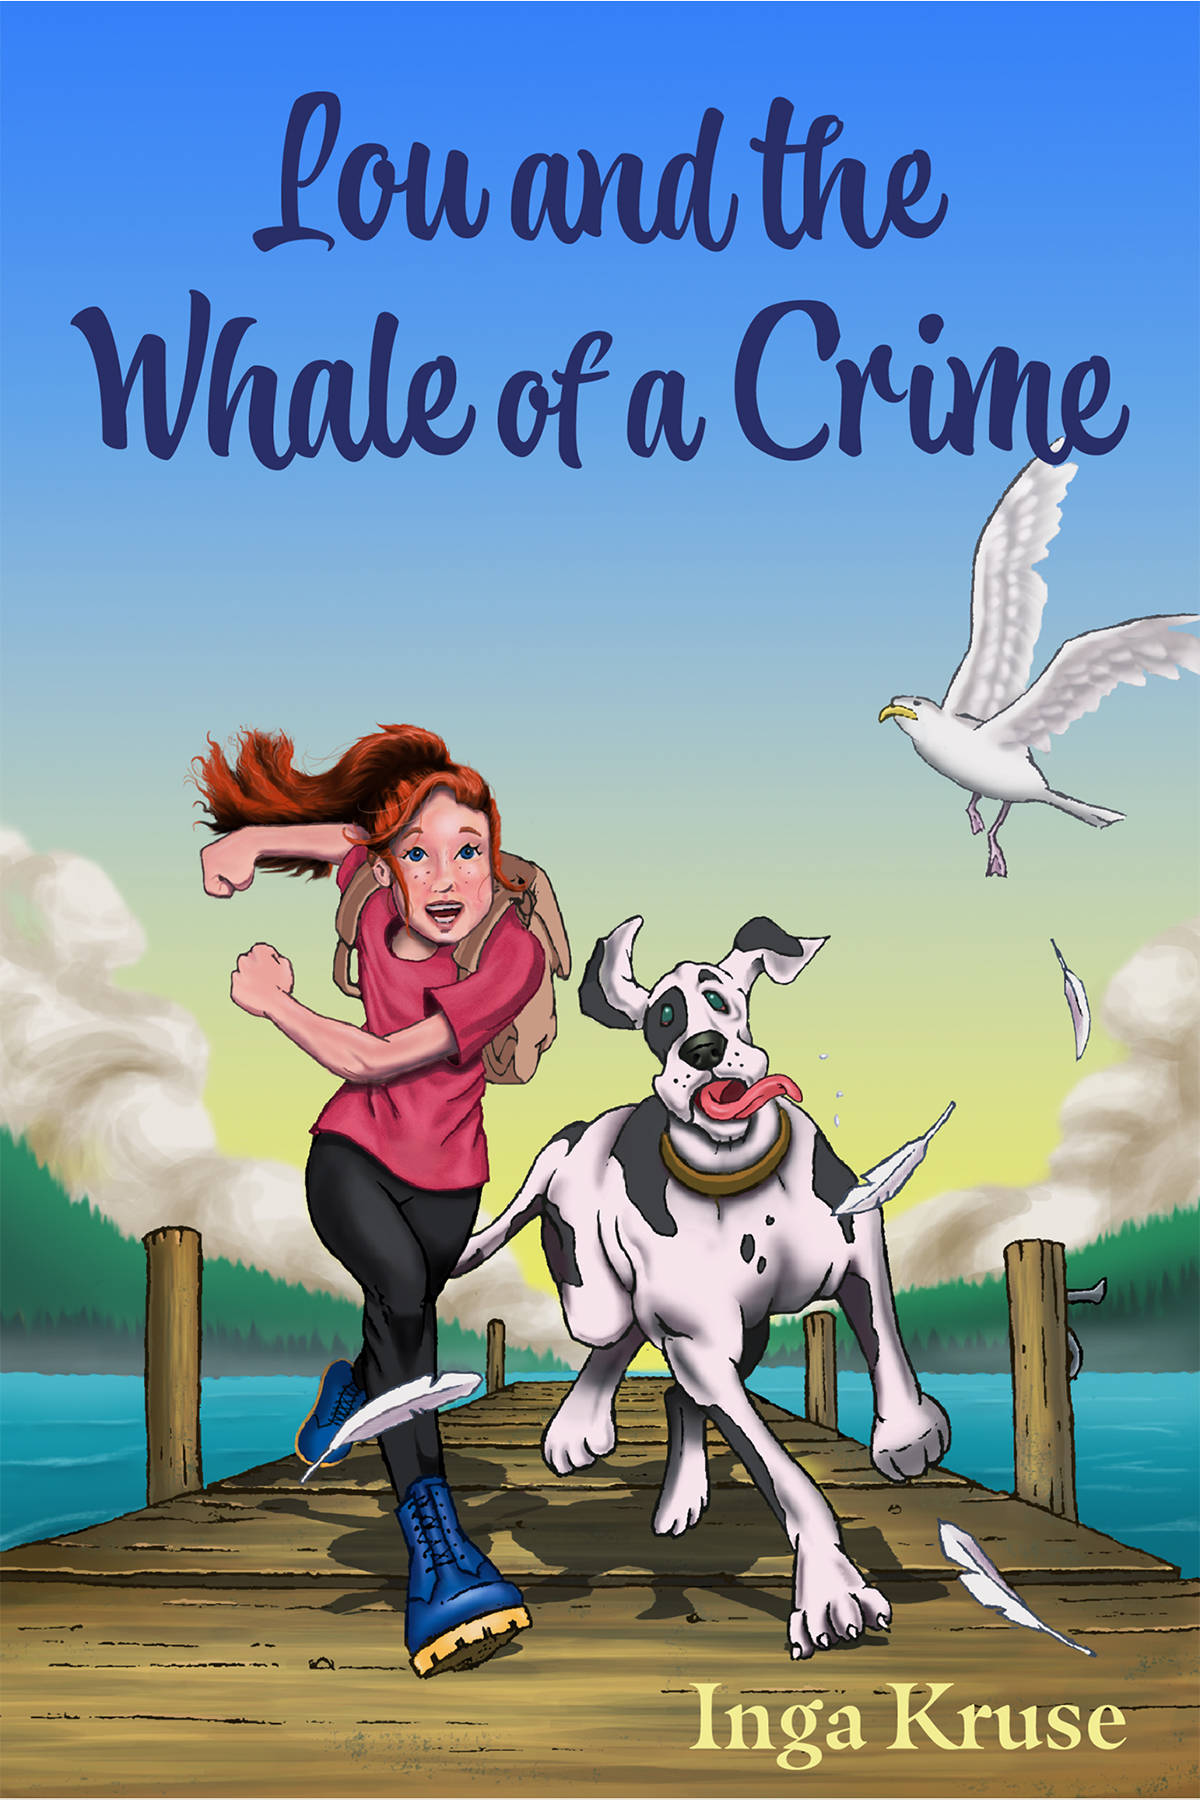 Inga Kruse wrote and published her first book, Lou and the Whale of a Crime. (Inga Kruse/Special to the Aldergrove Star)